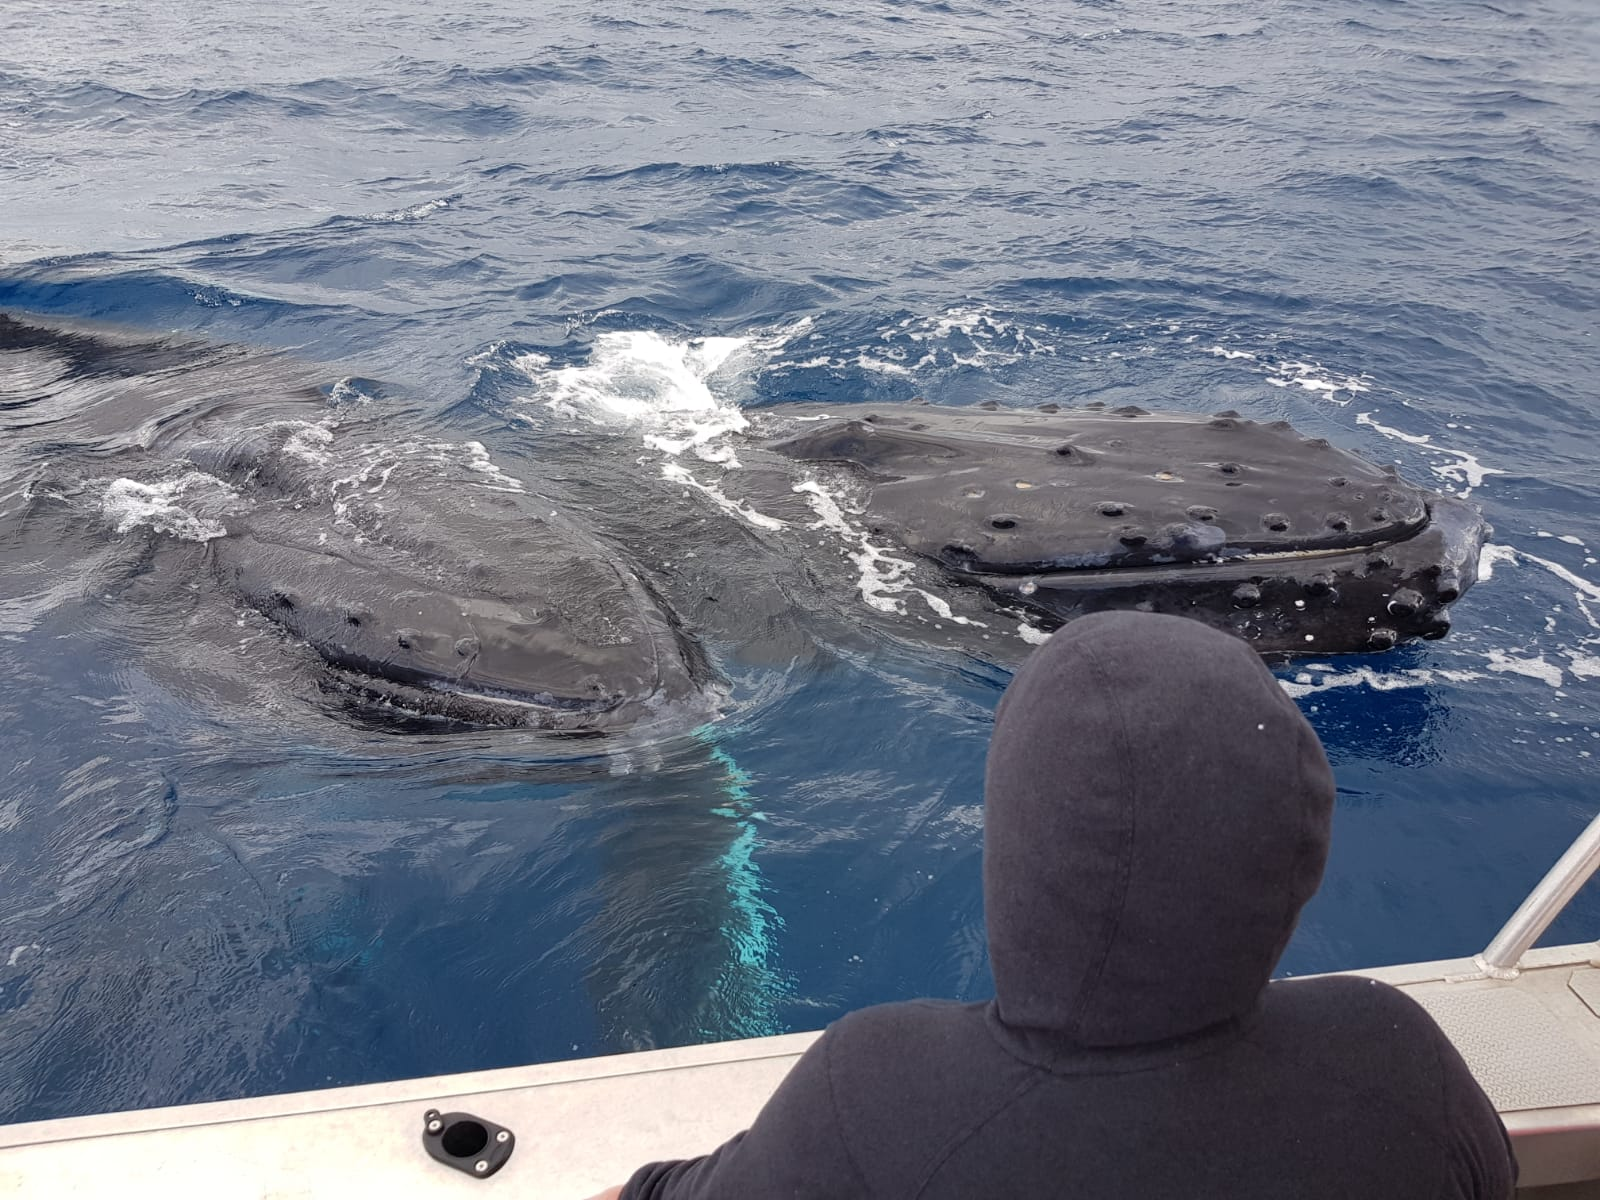 Whales mugging a boat in Tonga